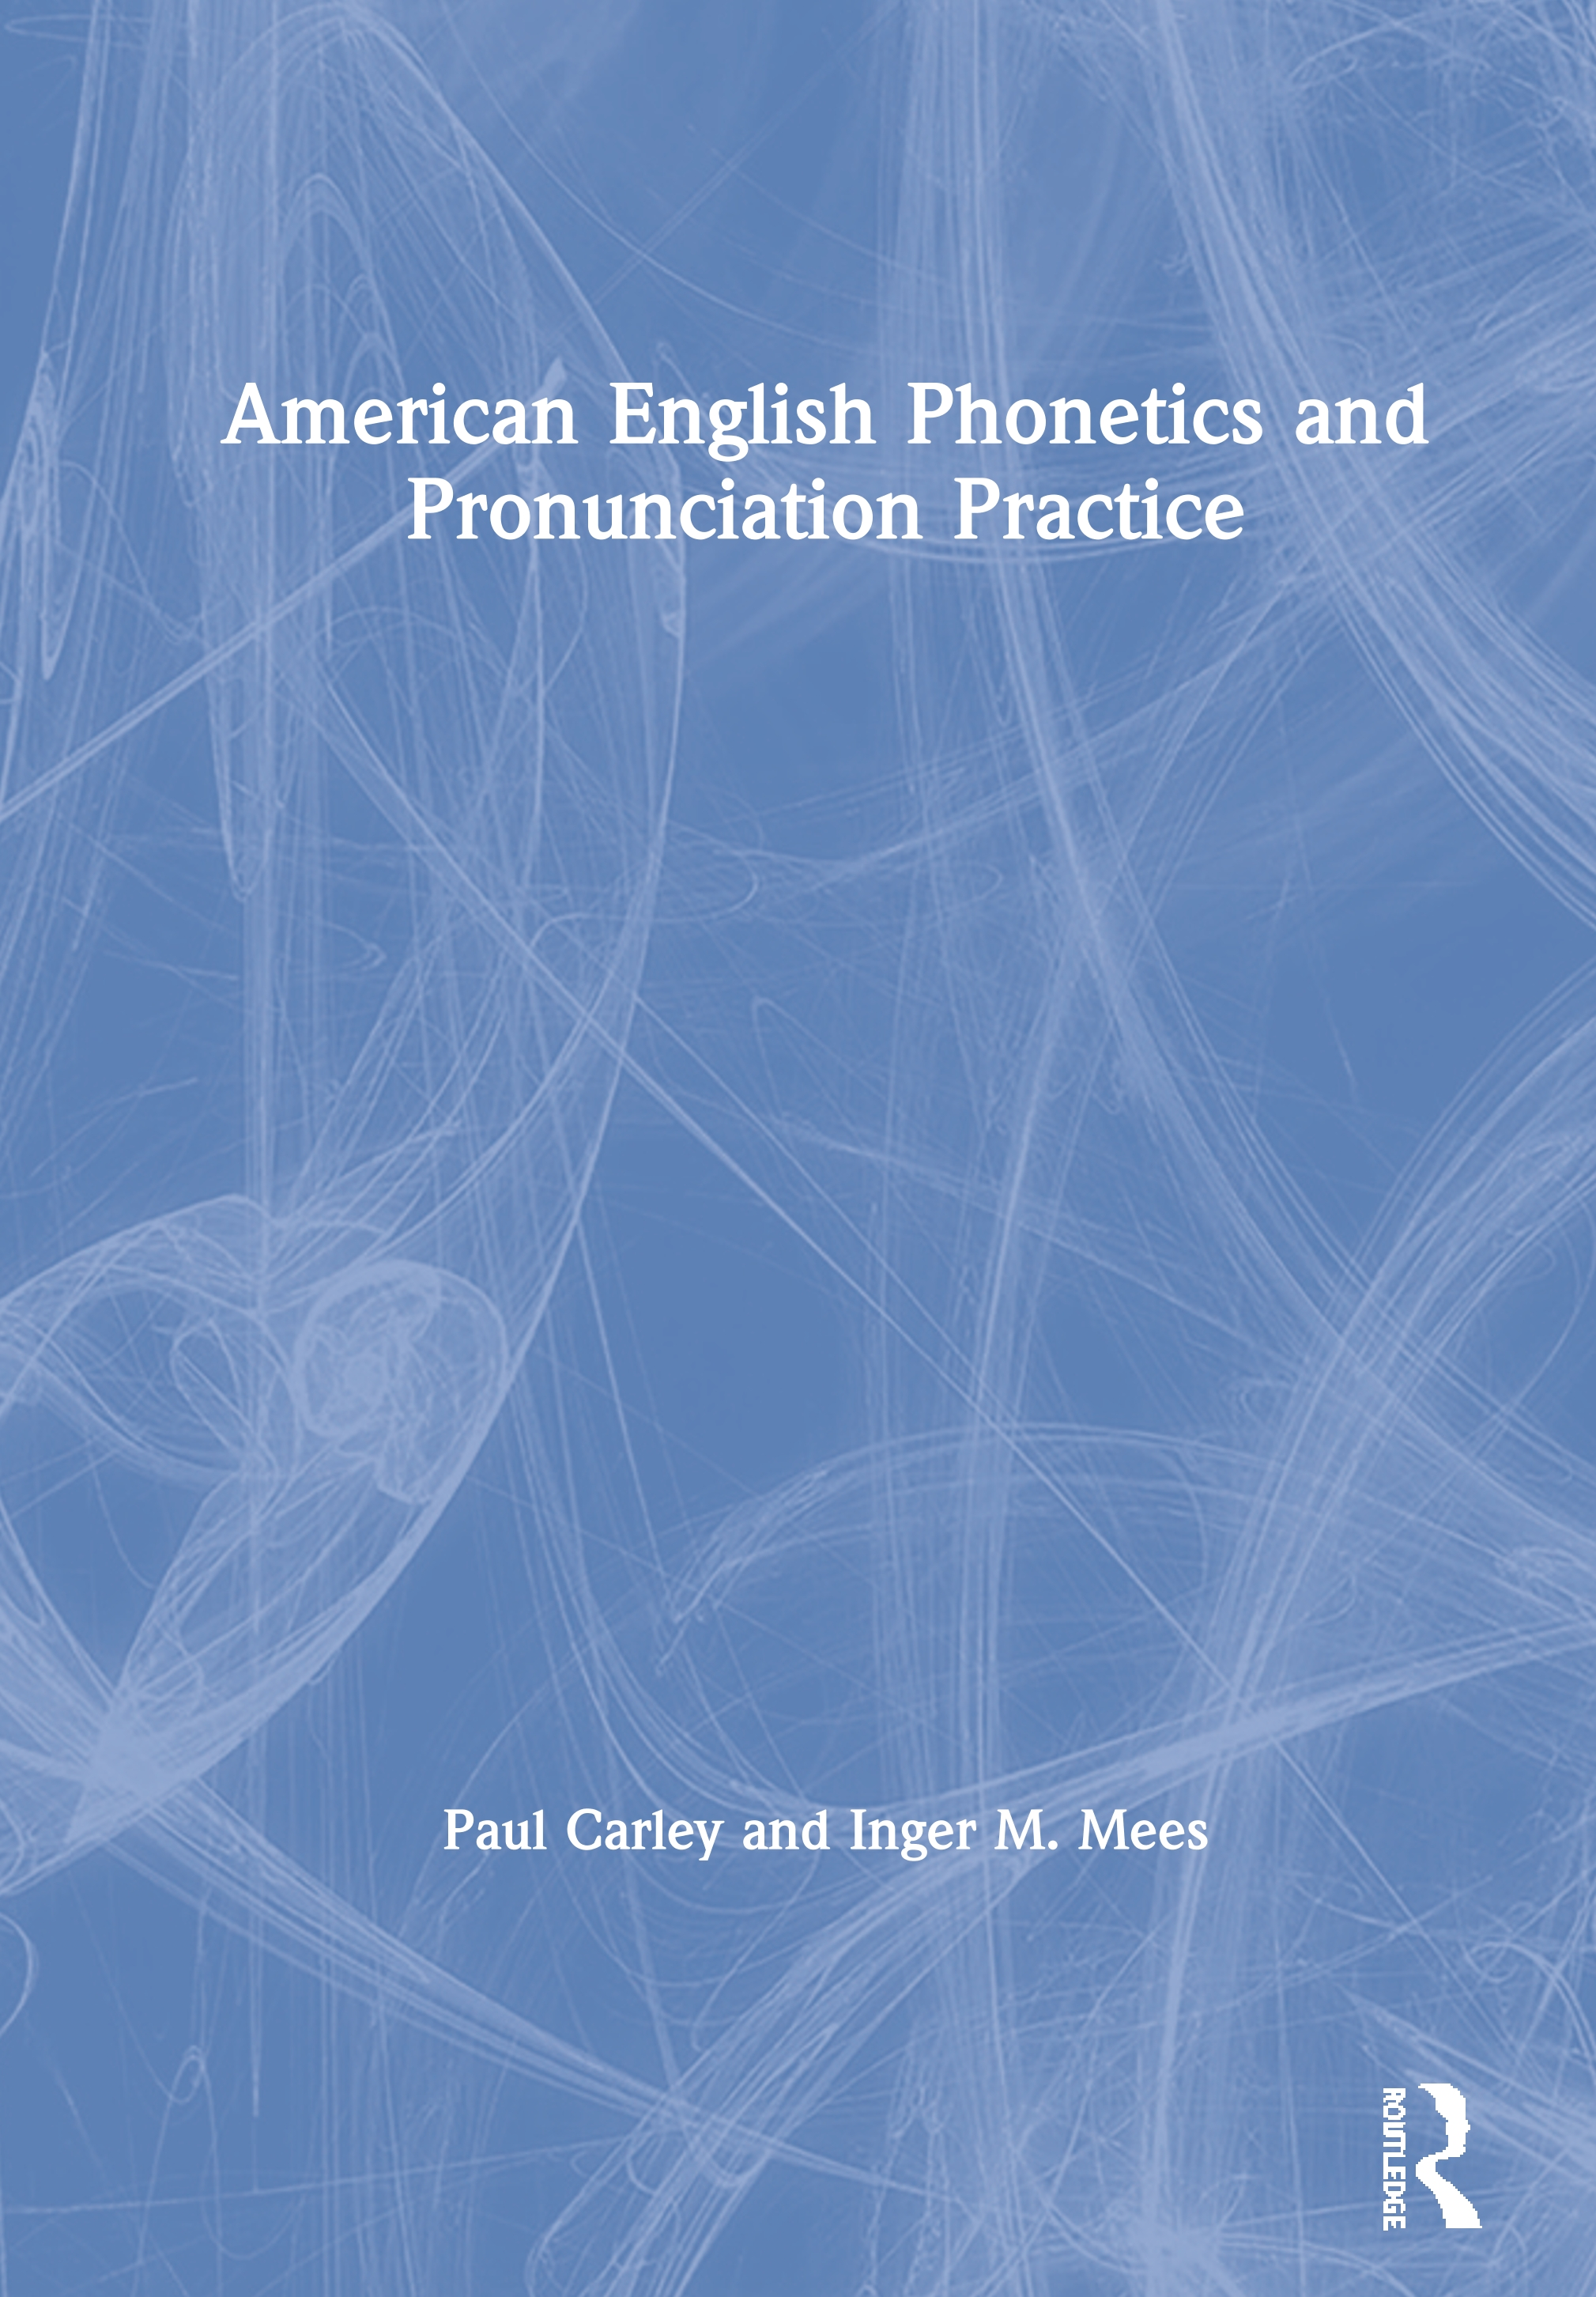 American English Phonetics and Pronunciation Practice: 1st Edition (Hardback) book cover